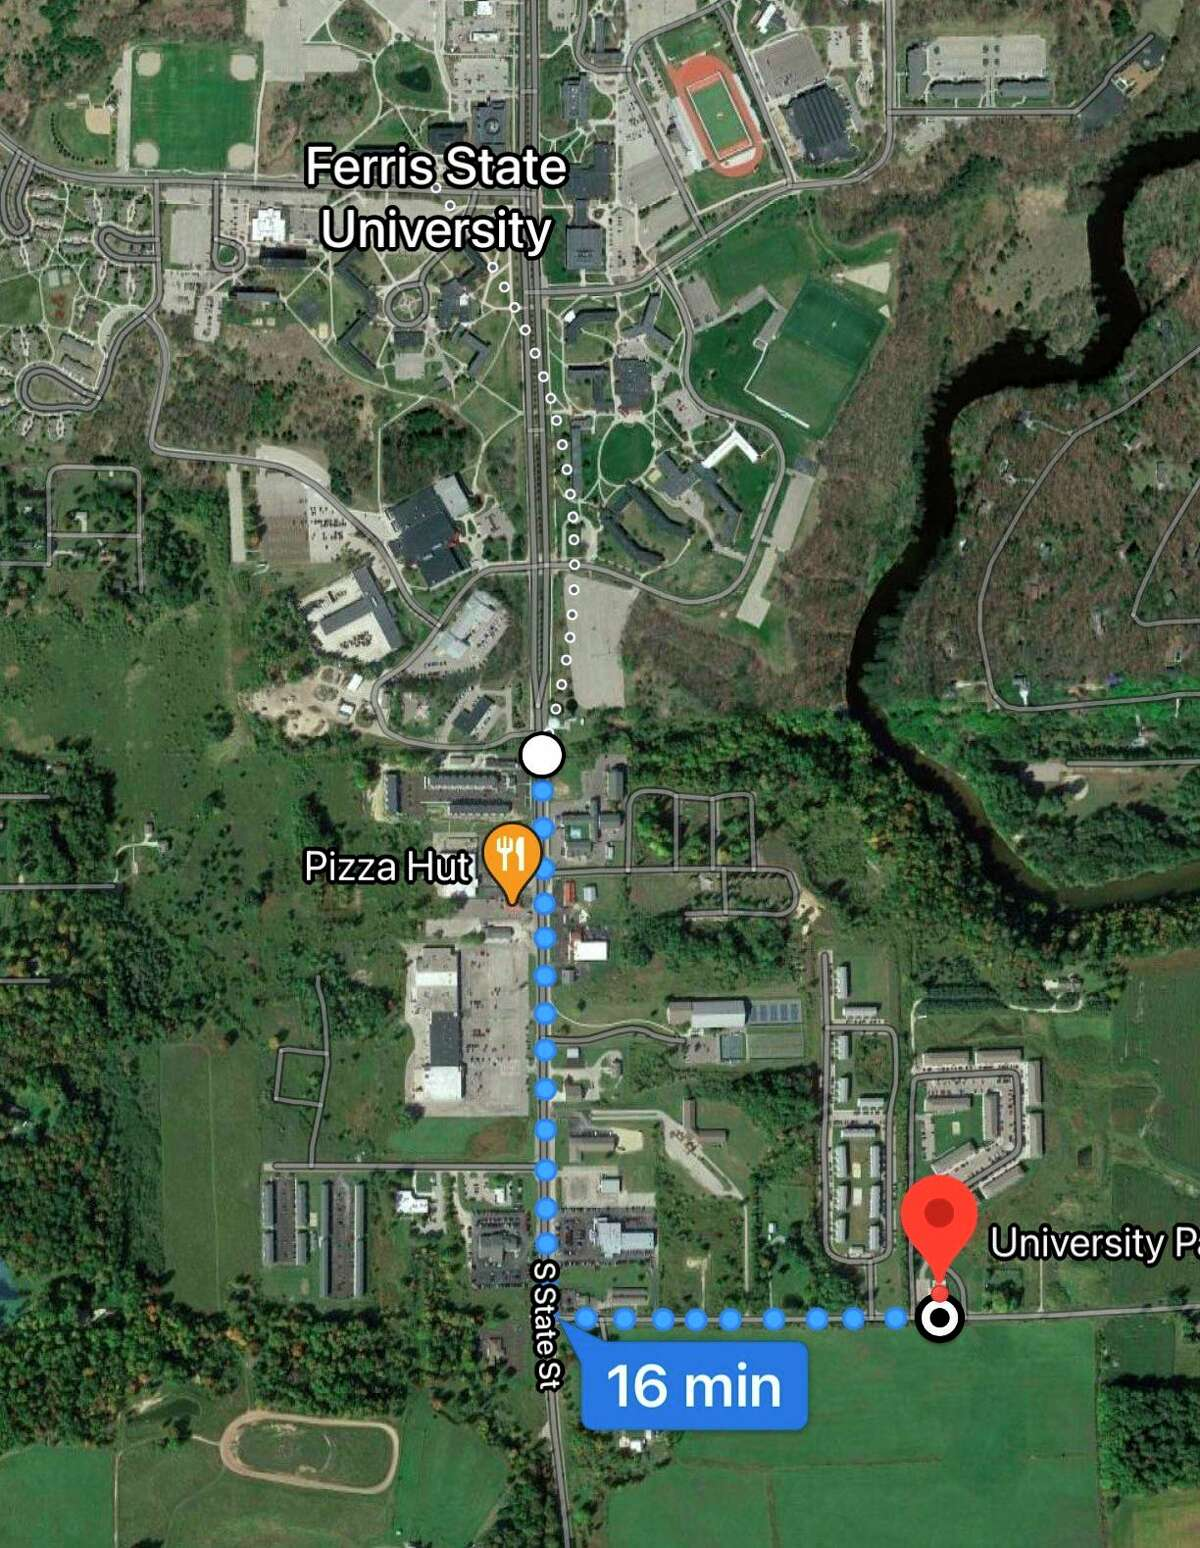 FSU officials have expressed concern regarding students walking from apartments on 14 Mile Road and Gilbert Road having to walk along State Street with no sidewalks. Big Rapids Township officials have agreed to look into the feasibility of adding sidewalks. (Photo courtesy of Google Maps)